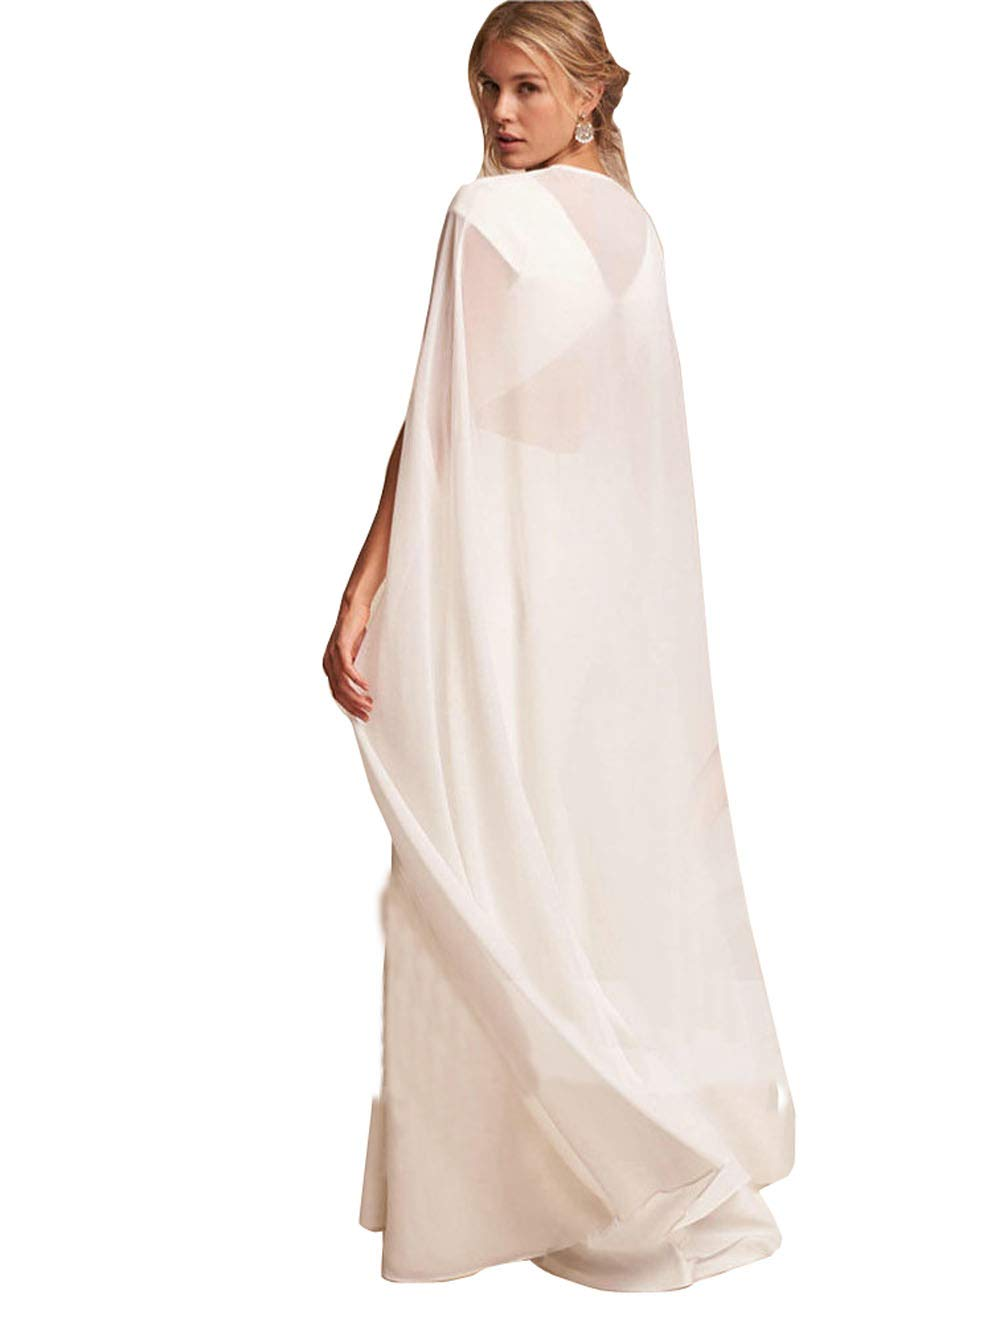 Bridal Wedding Capes Veils Chiffon Bridal Wraps Cathedral Length Wedding Cloak with Arm Hole by Kelaixiang